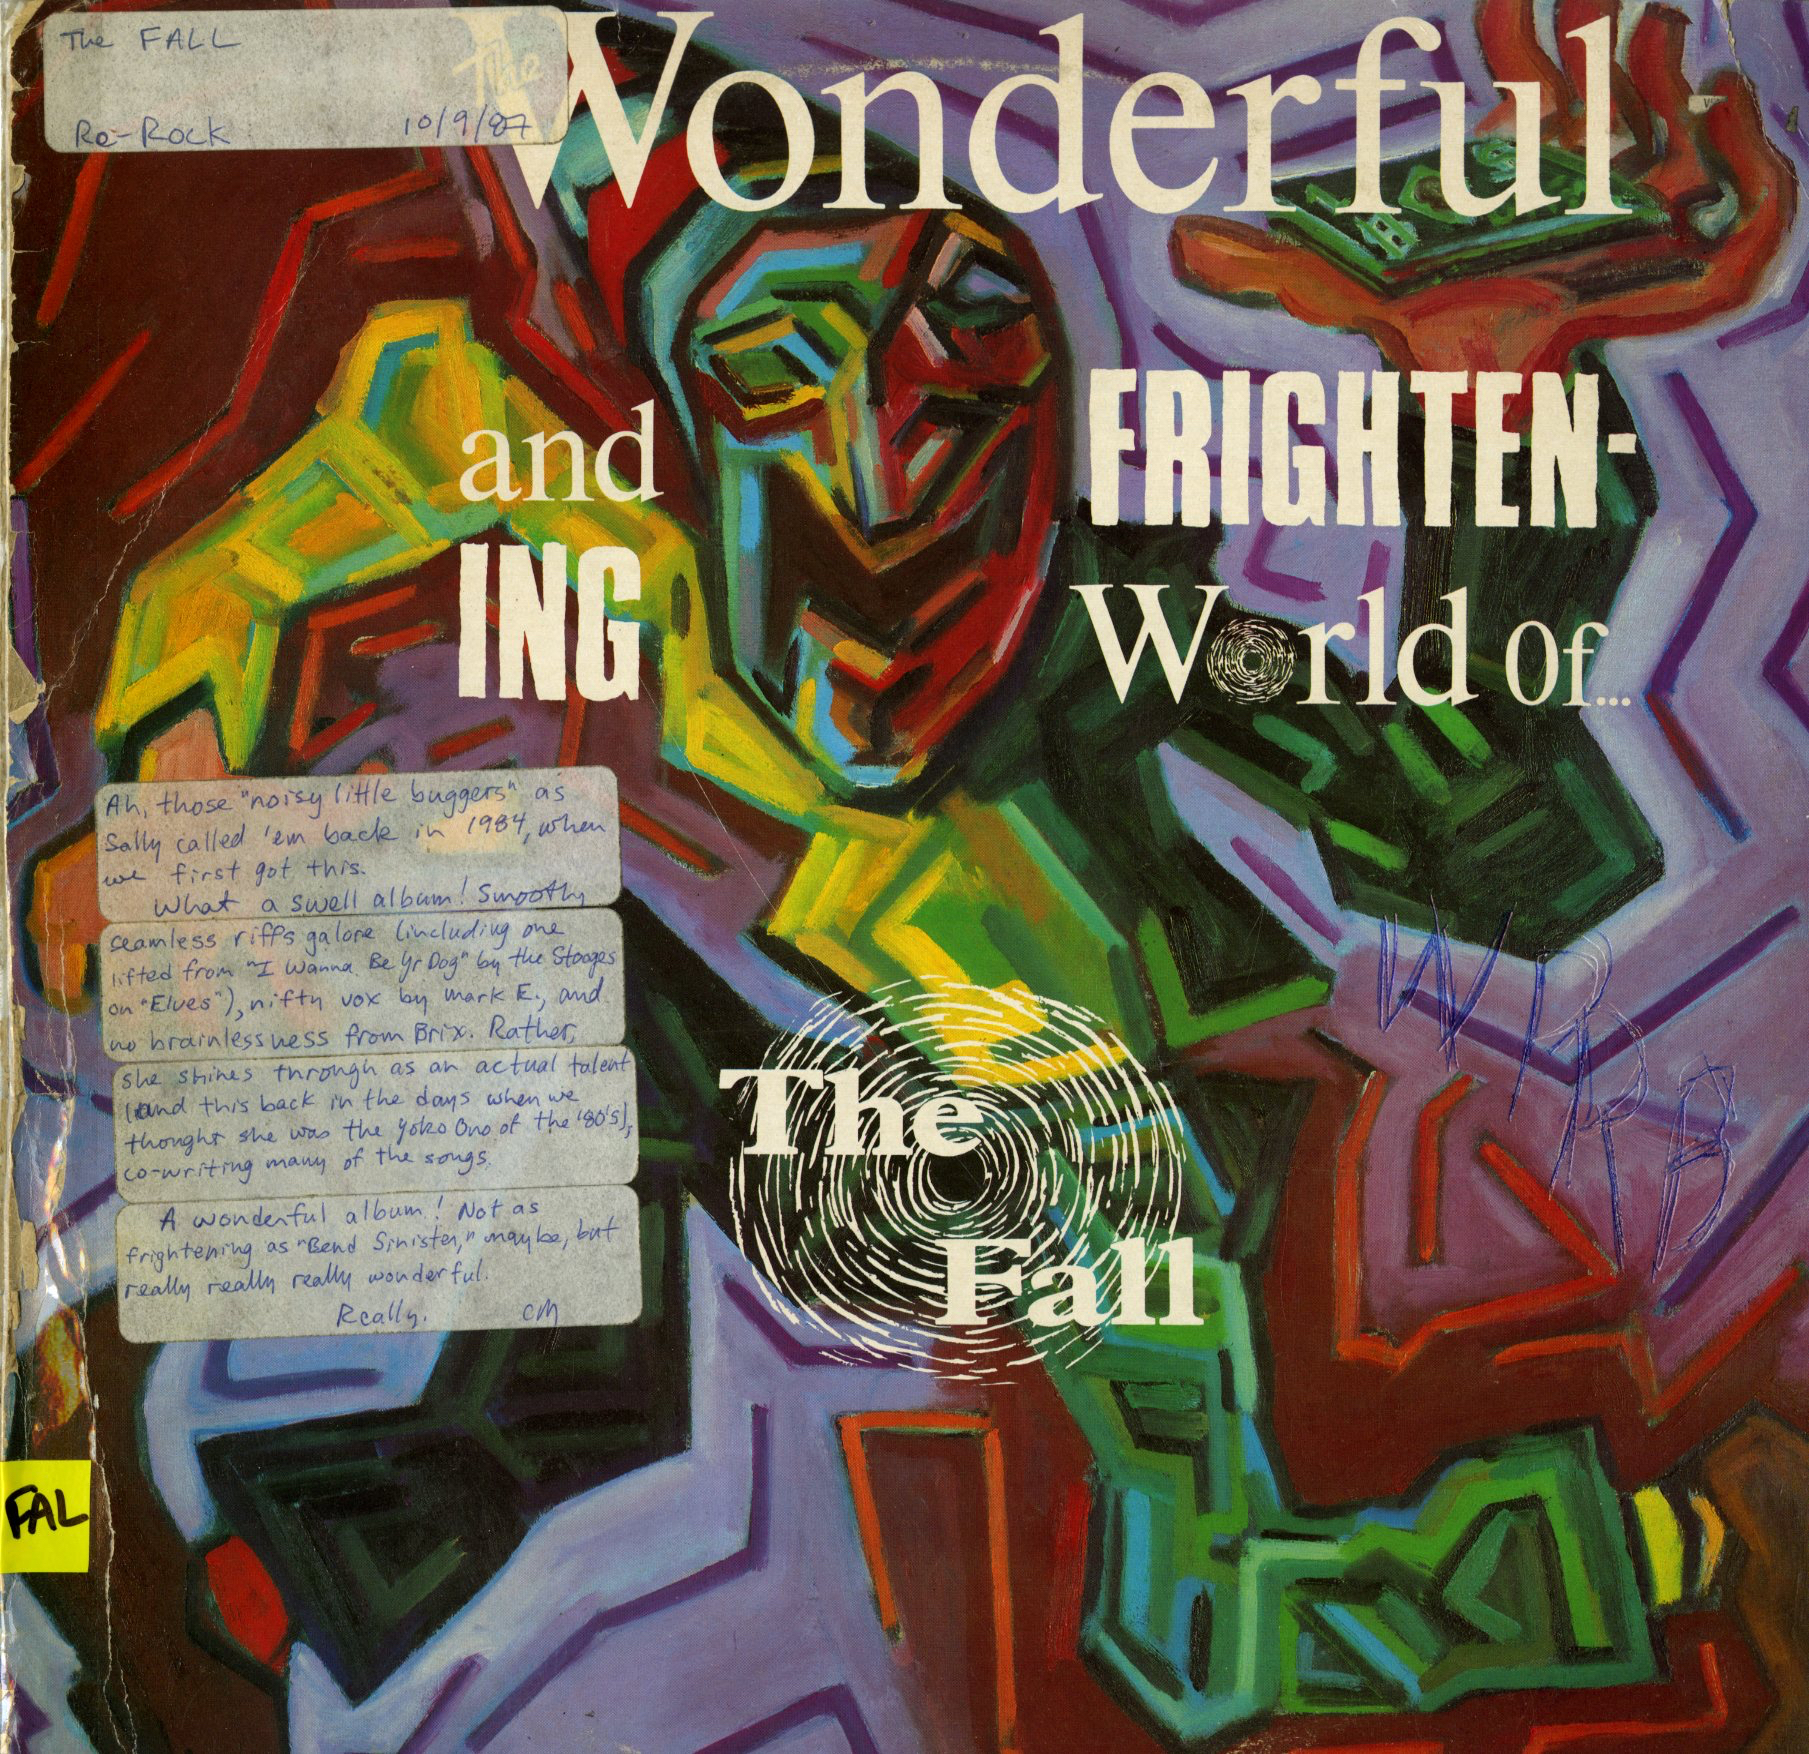 The_Fall_-_Wonderful_Frightening_World